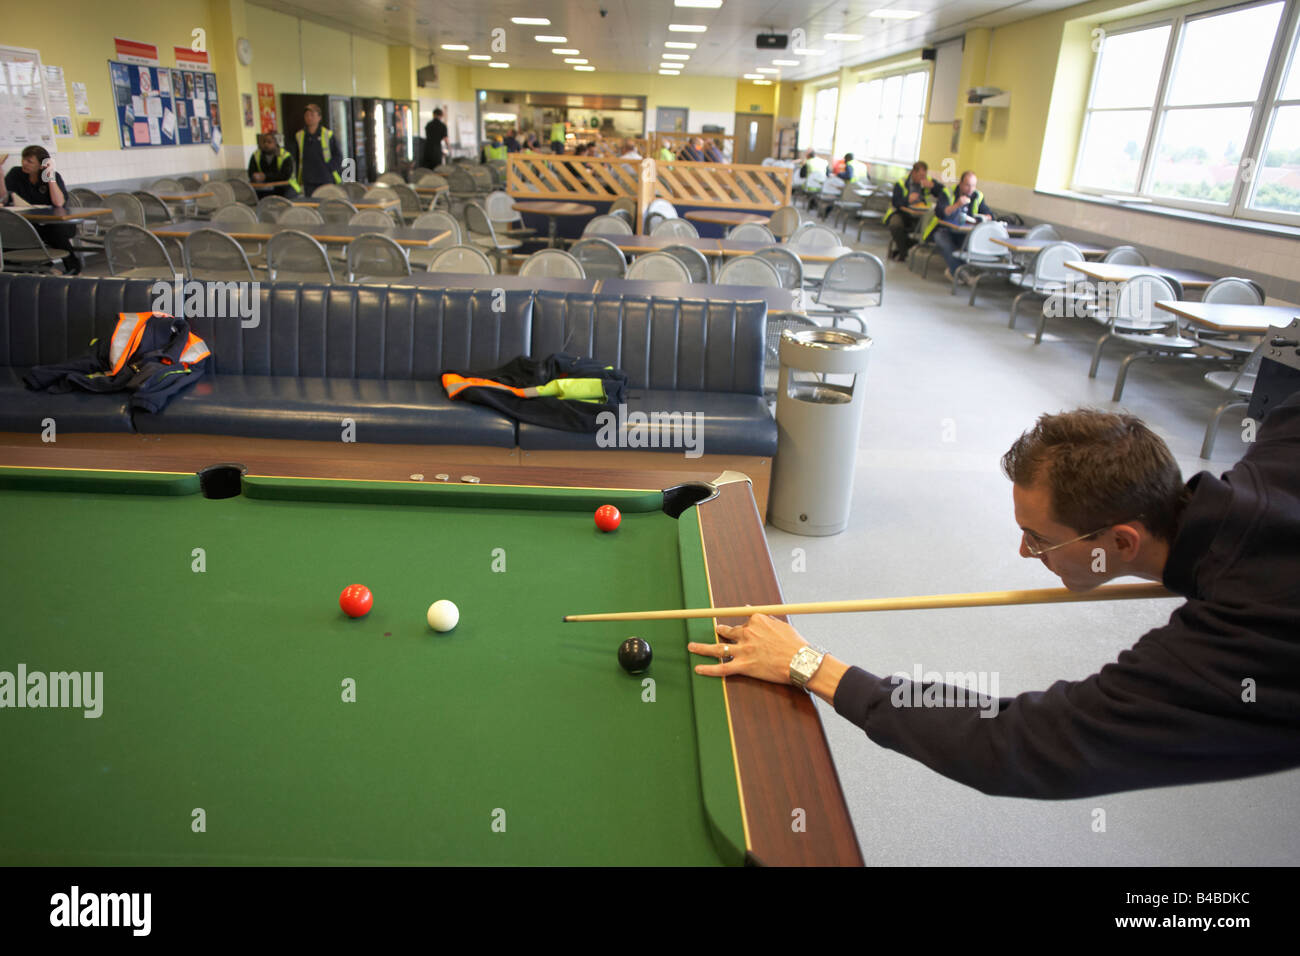 An employee of sainsbury 39 s plays pool during his lunch break in the stock photo 19921200 alamy for Waltham abbey swimming pool times